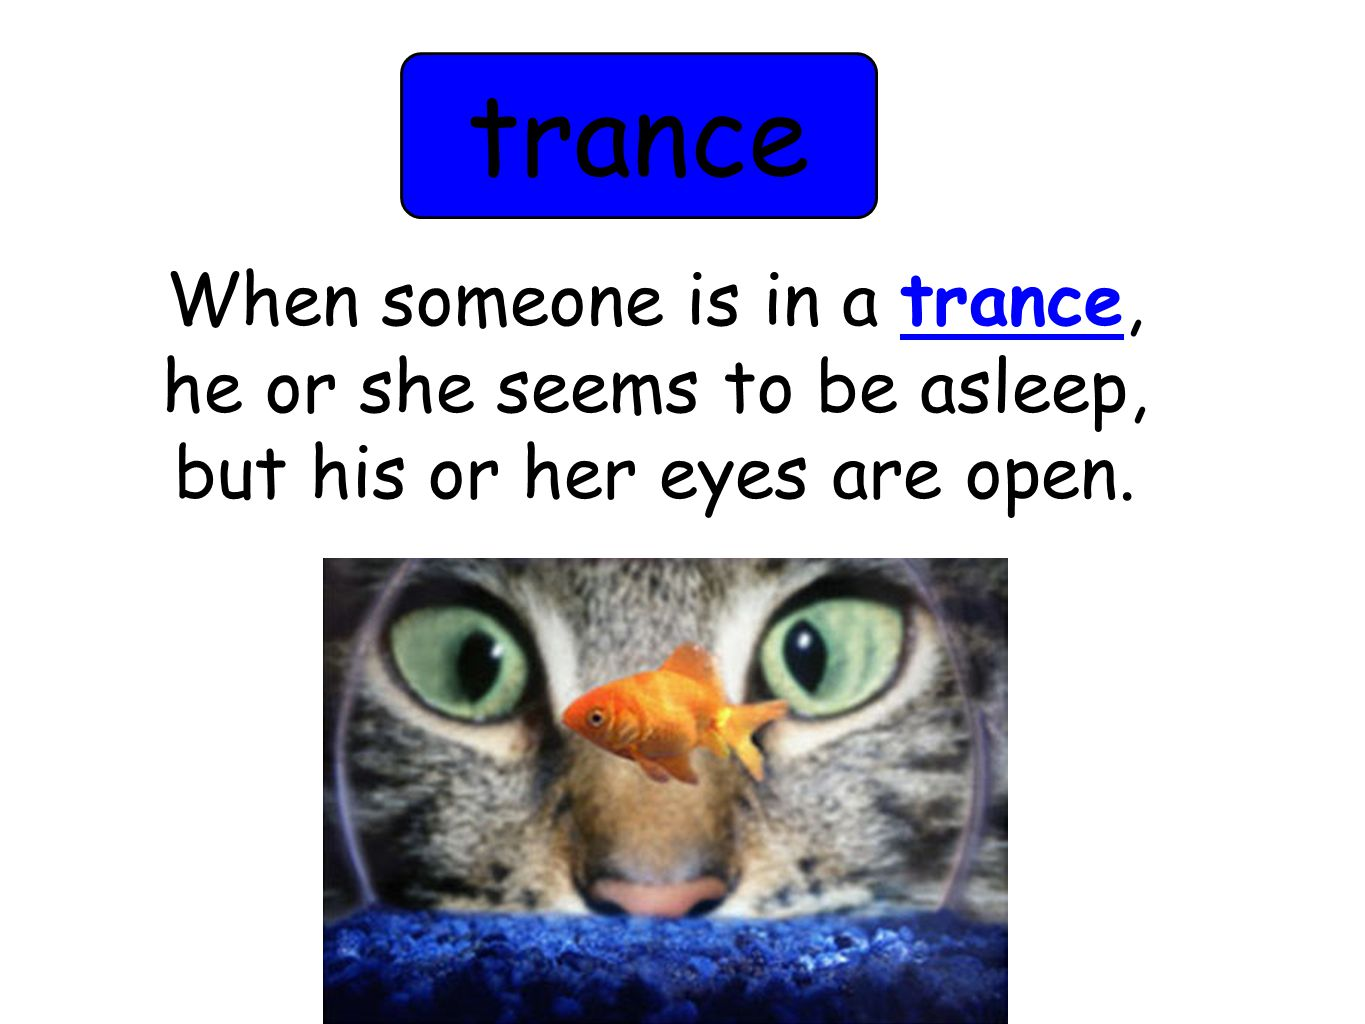 trance When someone is in a trance, he or she seems to be asleep, but his or her eyes are open.